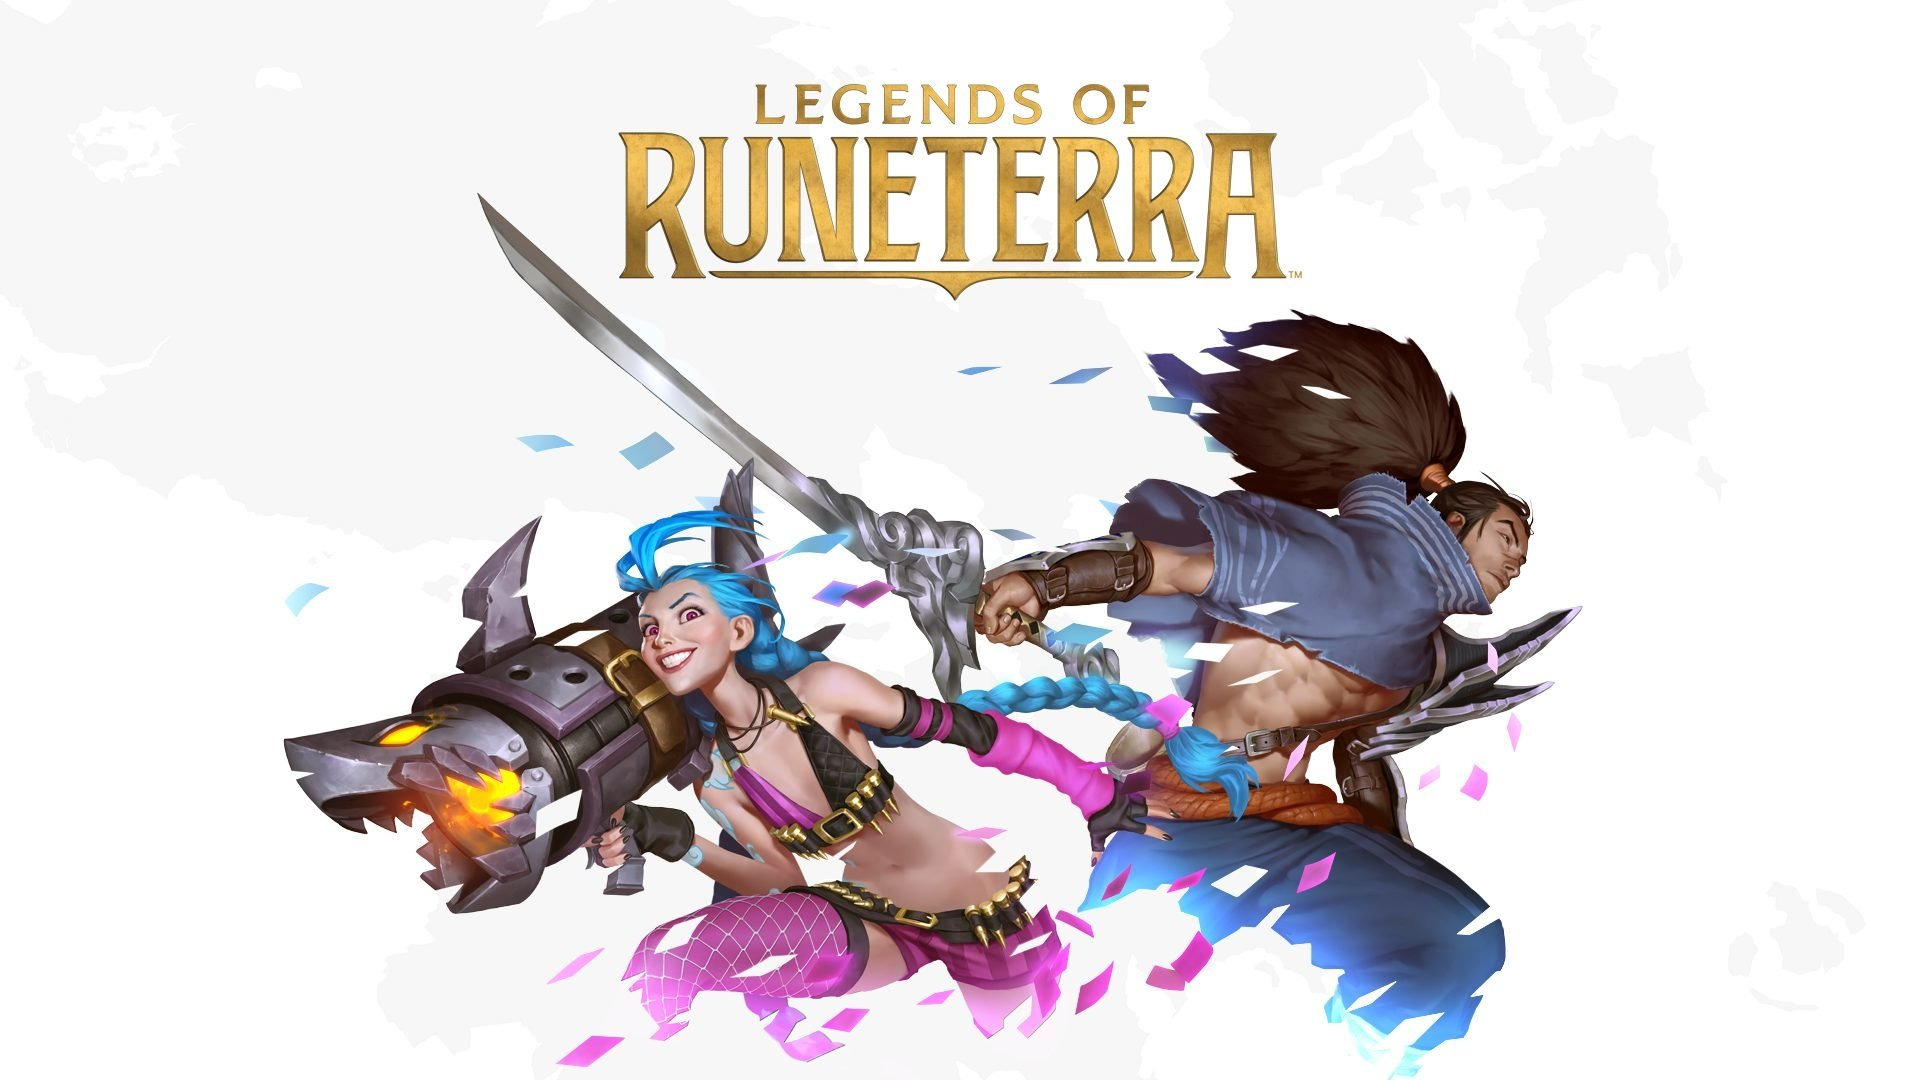 LegendsofRuneterra